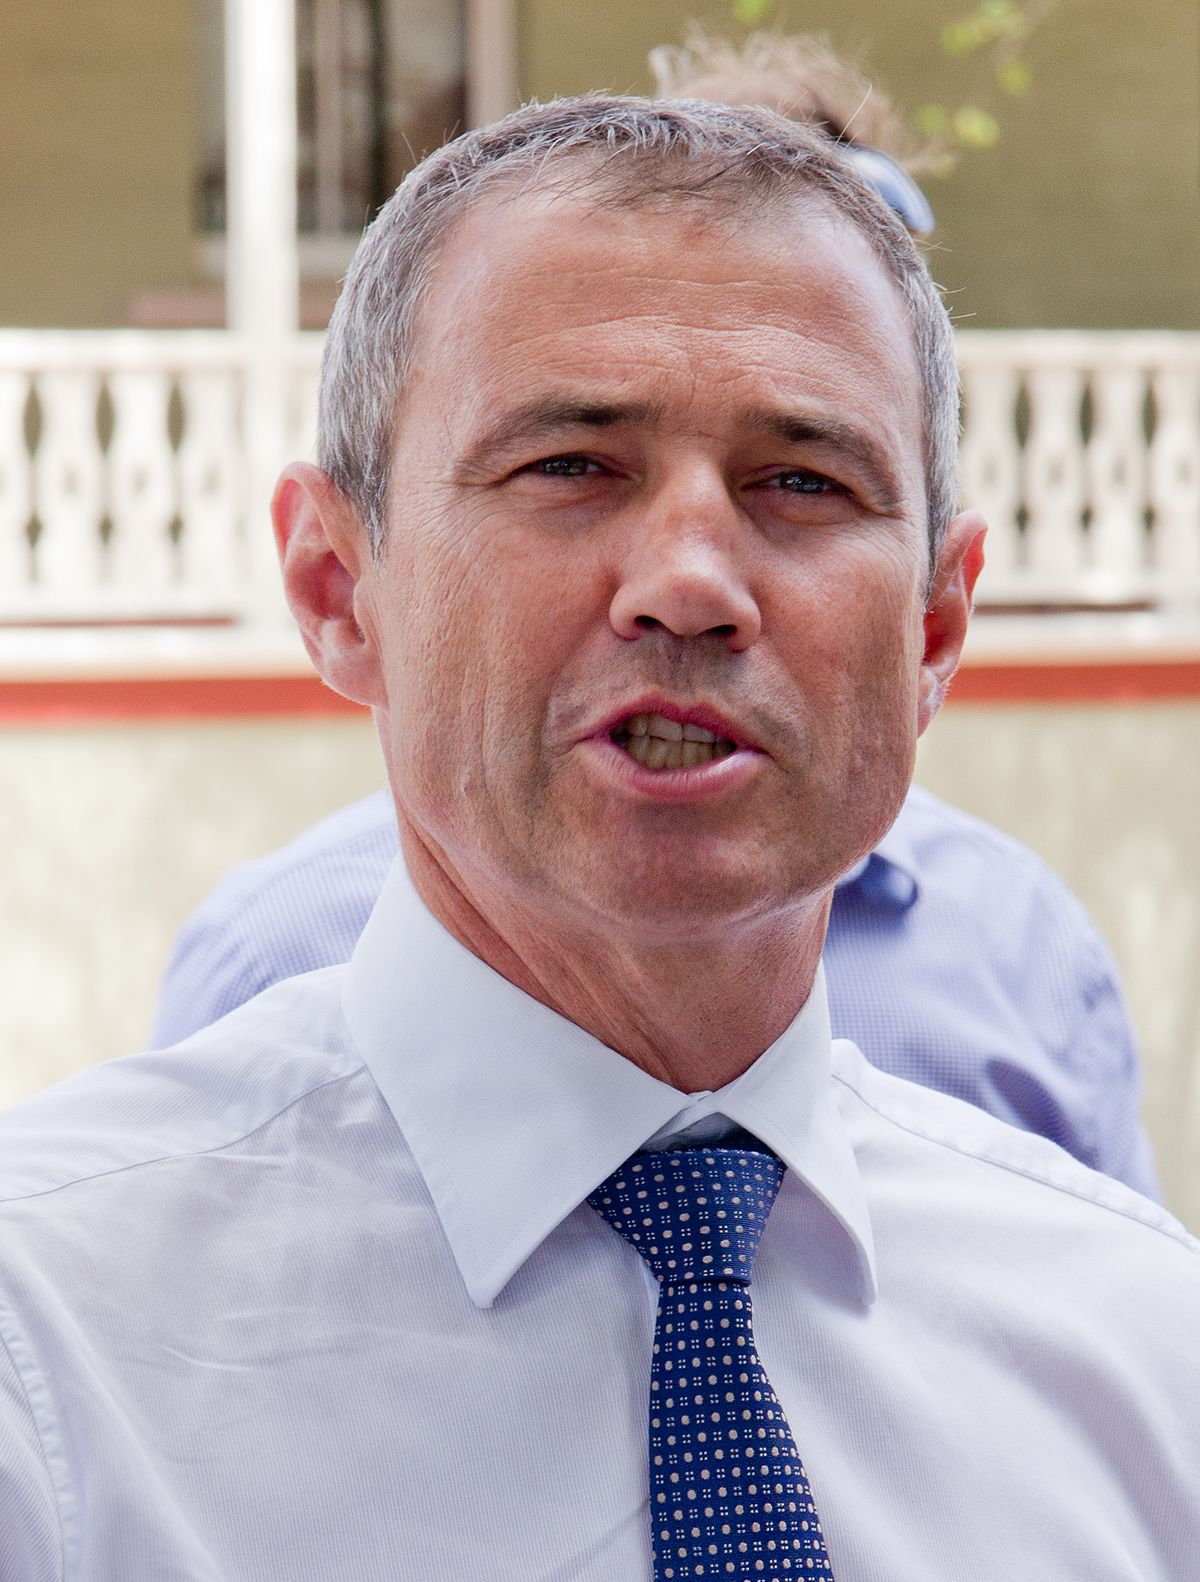 Roger Cook Politician Wikipedia